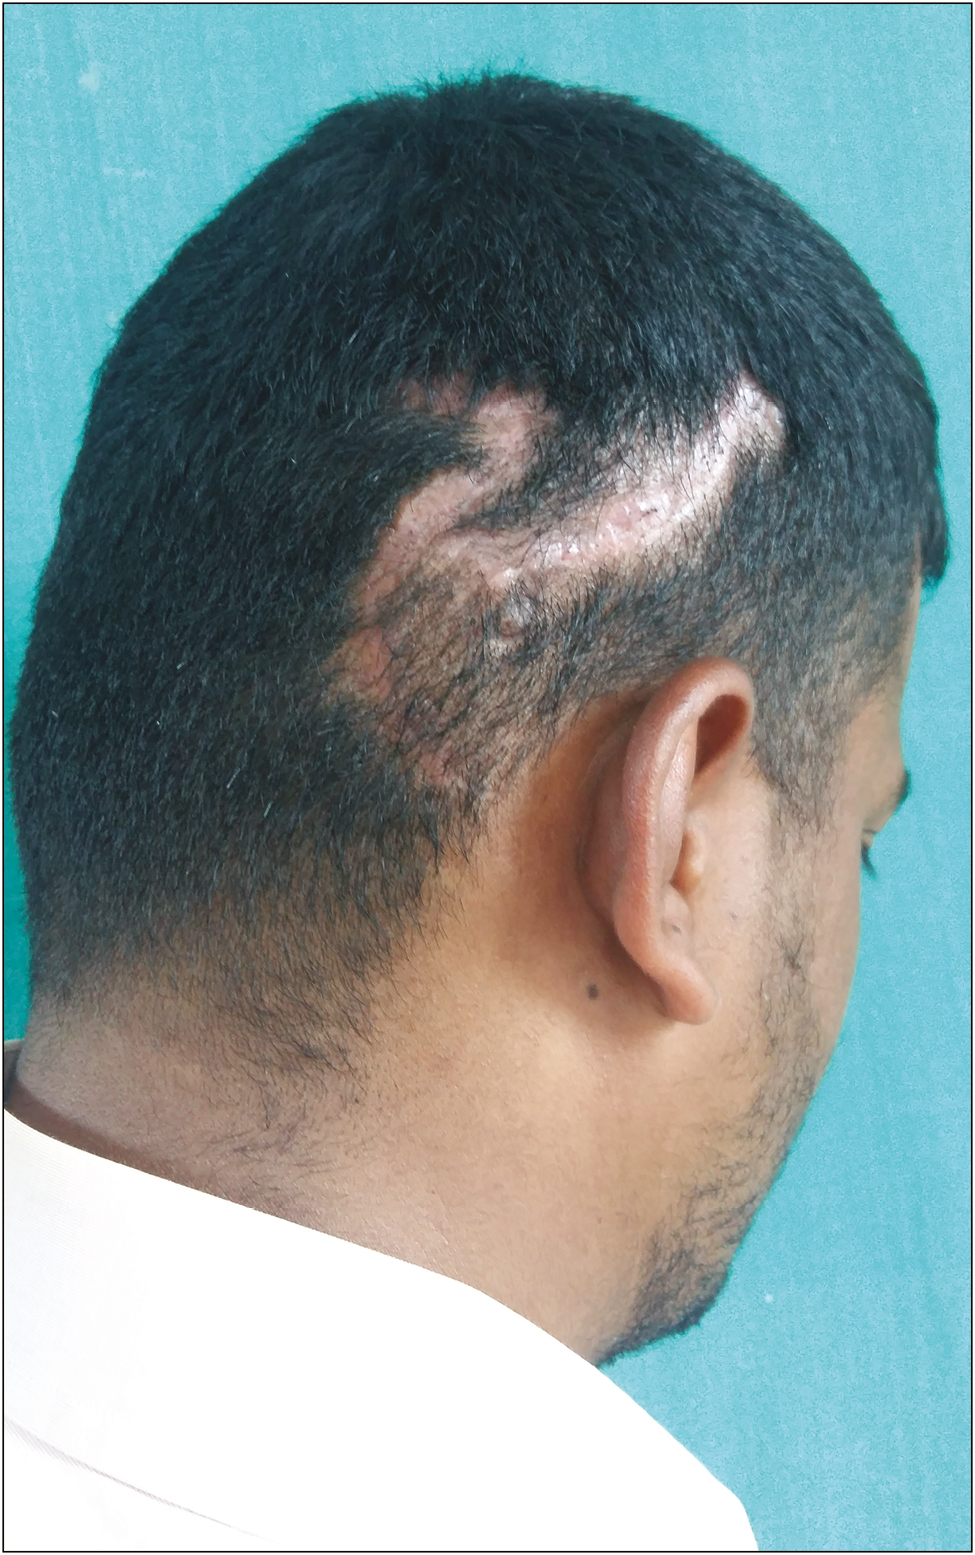 Figure 5: Scar with well-oriented hairs that will cover once they are grown (hairs being trimmed to make scar visible)